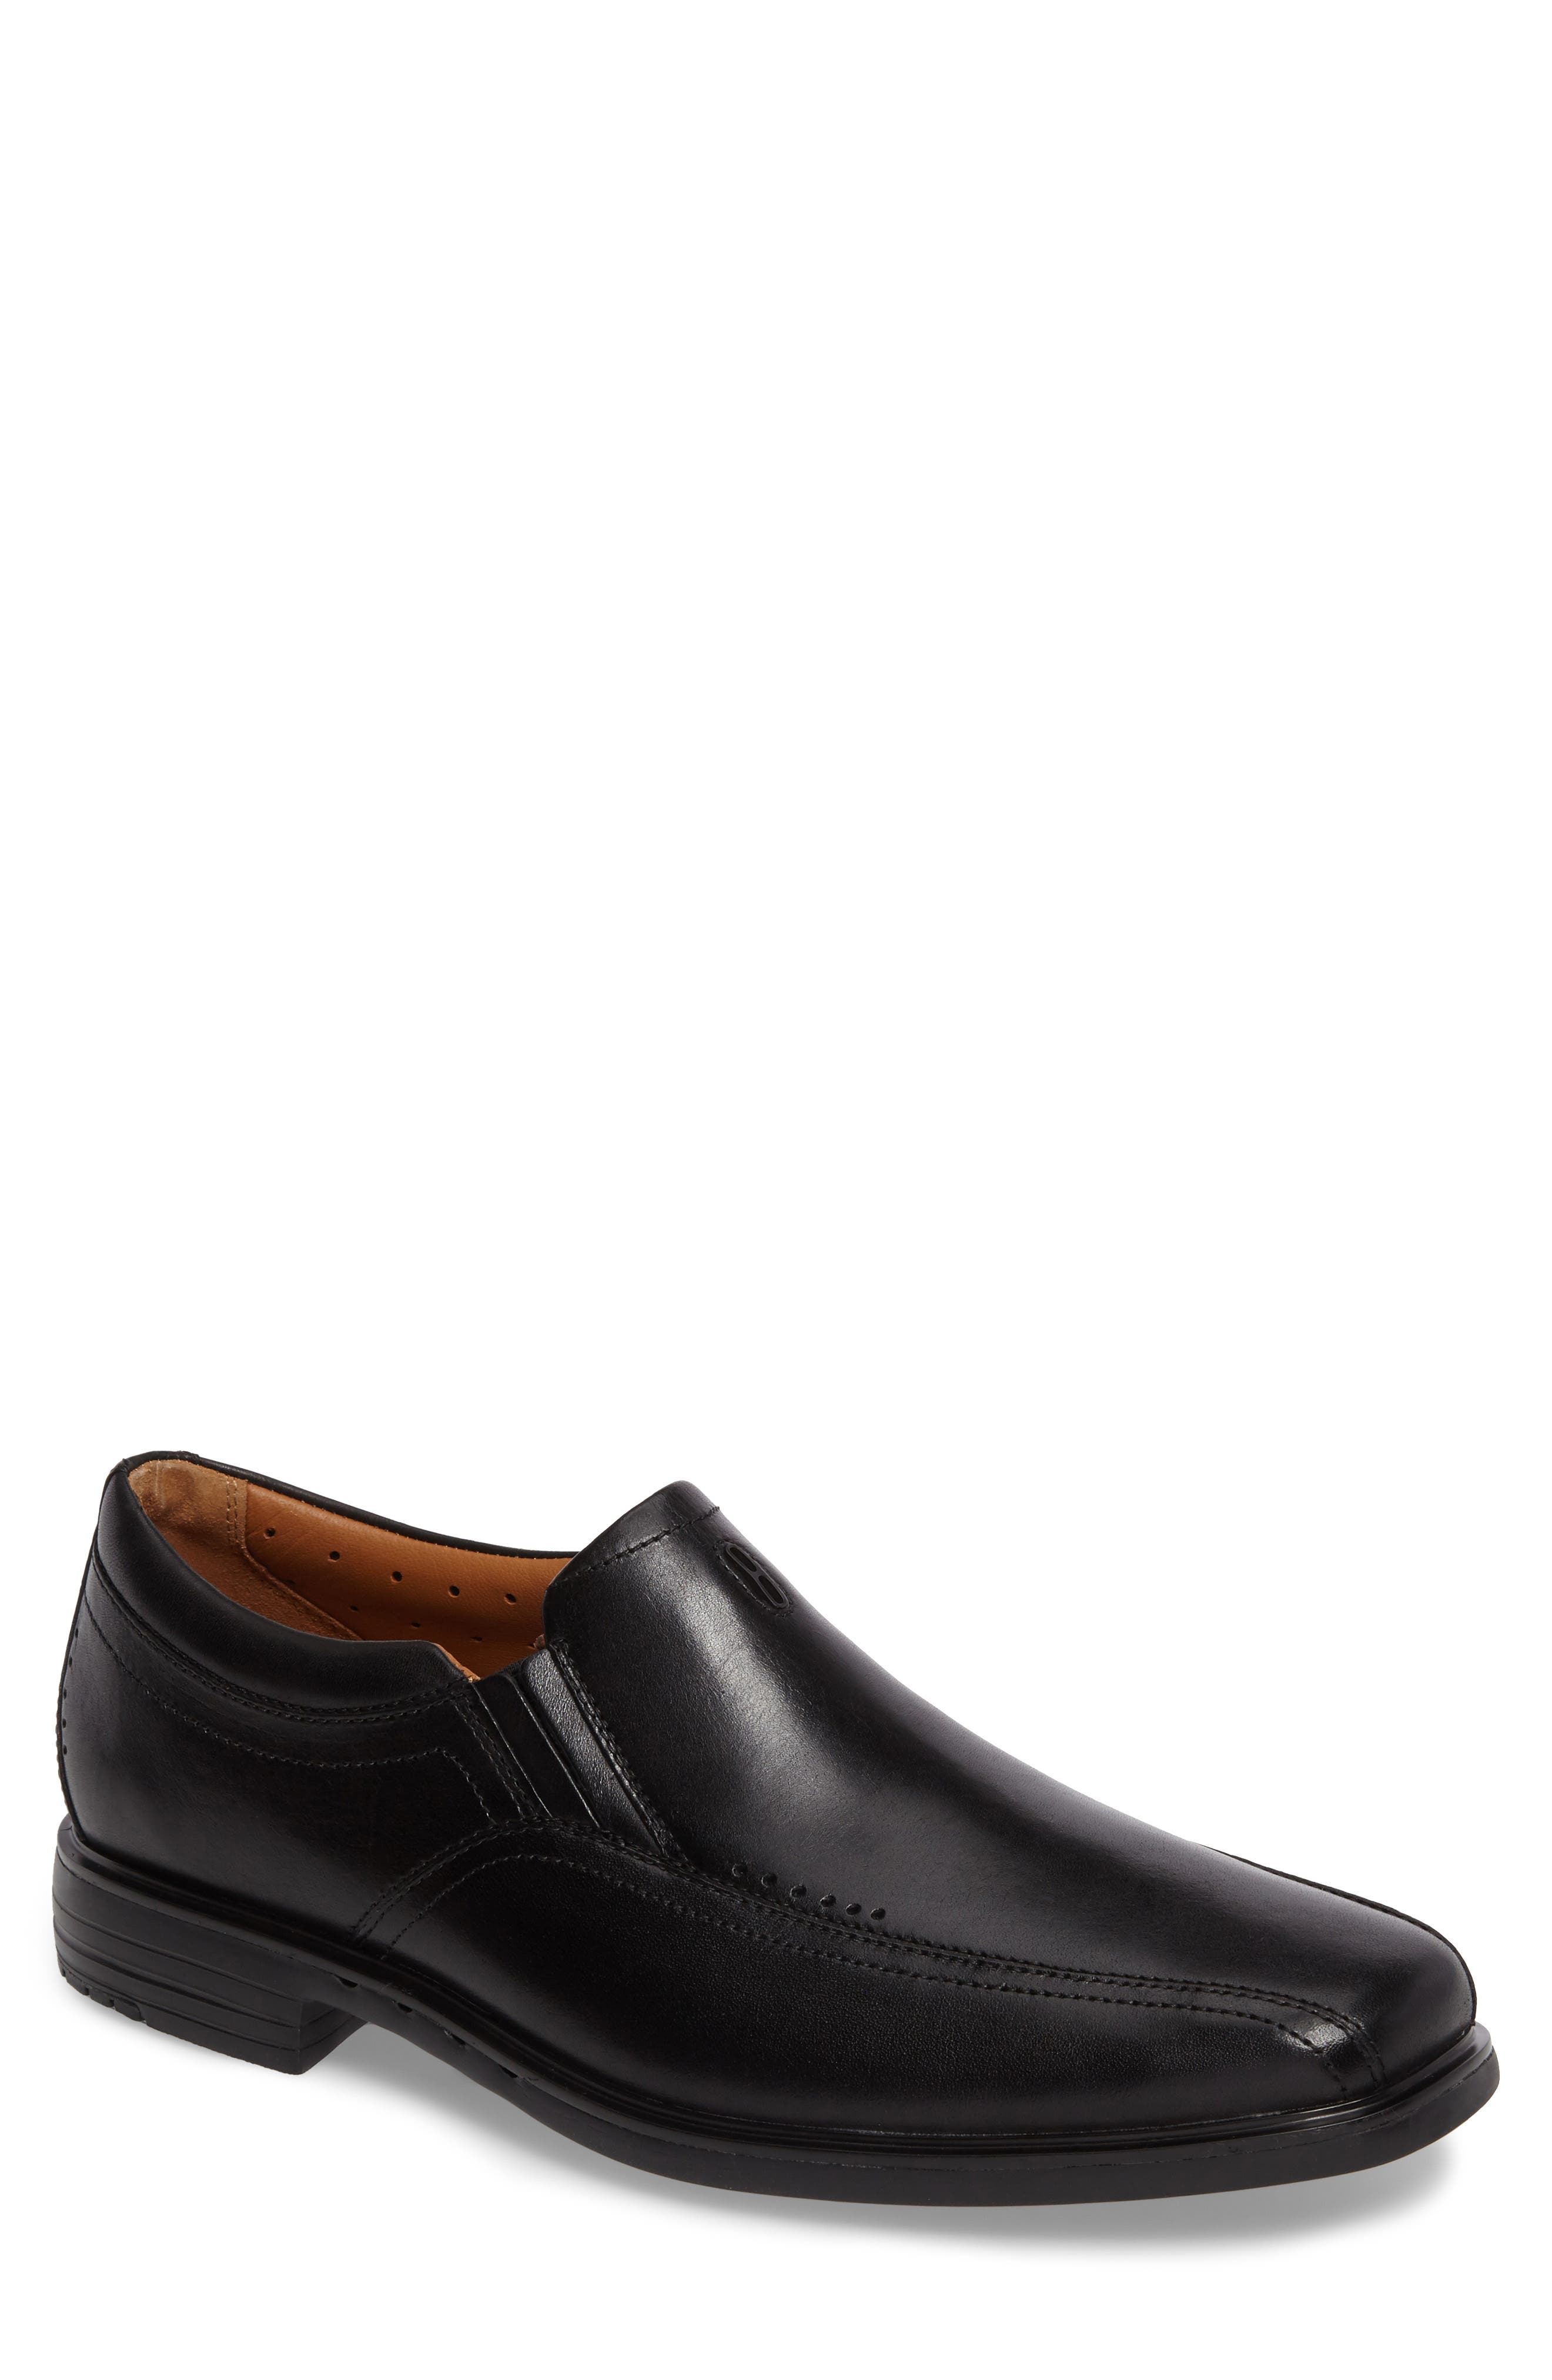 Un.Sheridan Go Loafer,                         Main,                         color, BLACK LEATHER